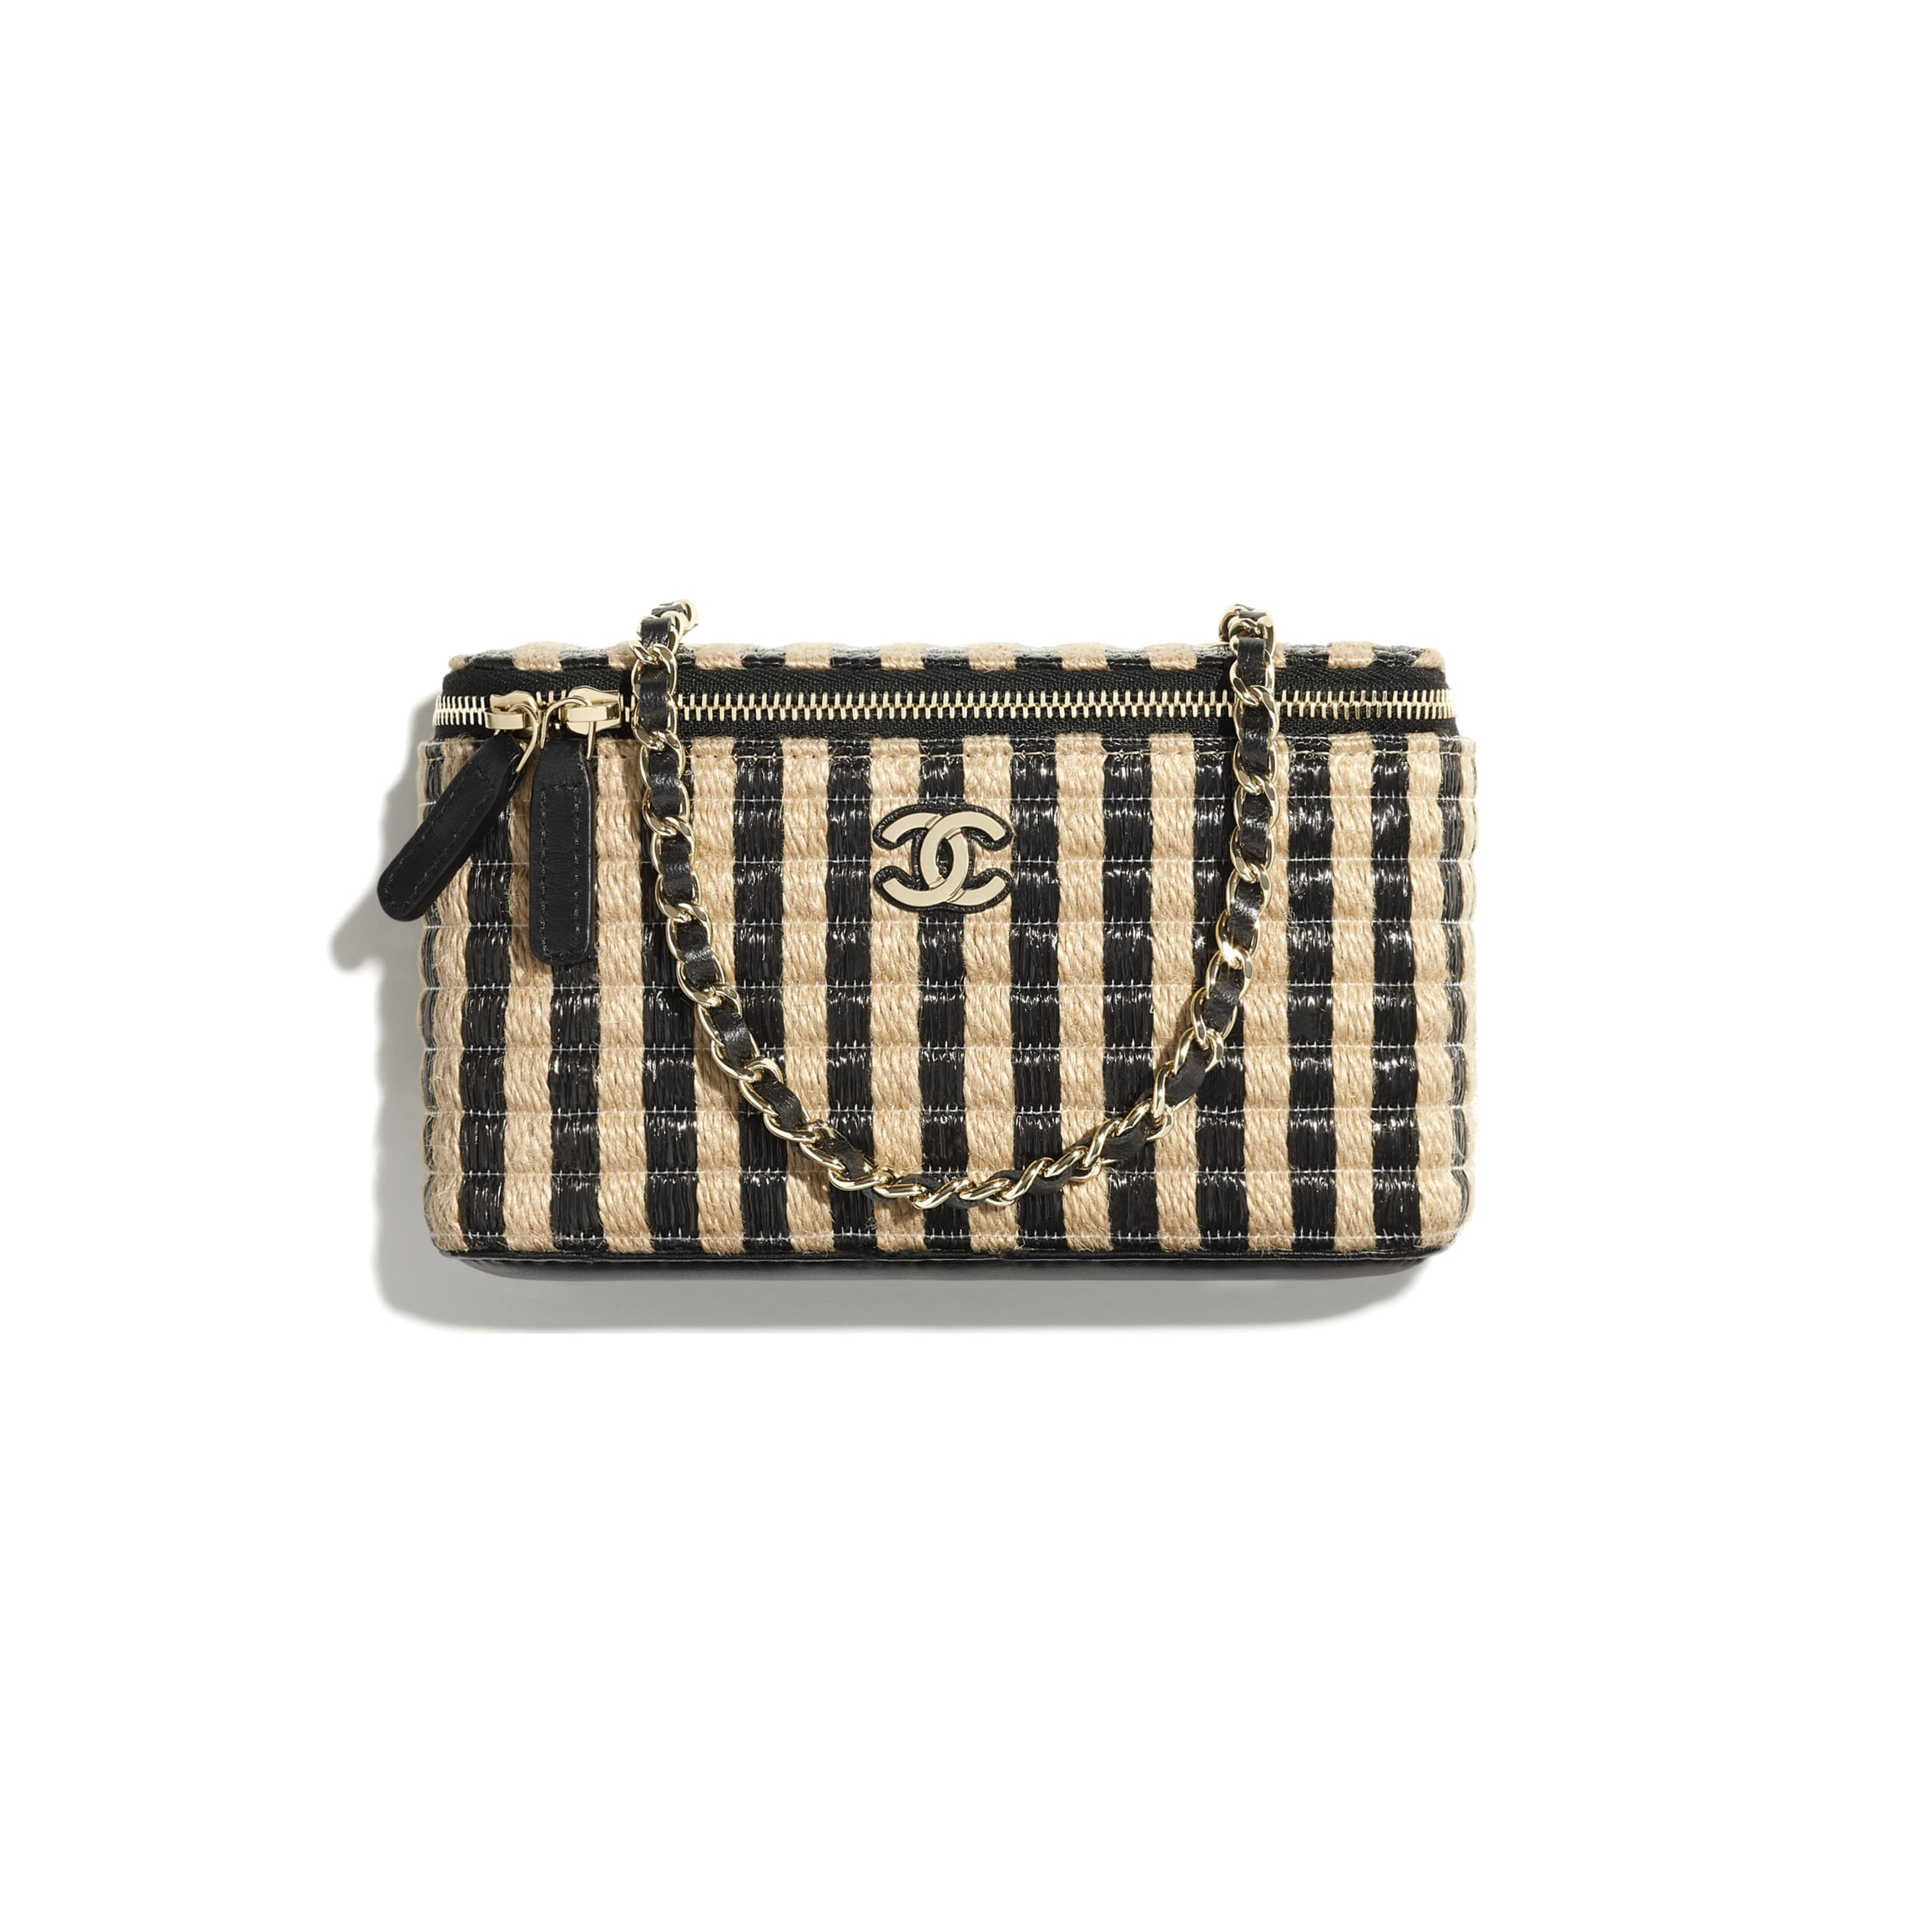 Vanity with Chain - Black & Beige - Raffia, Jute Thread & Gold-Tone Metal - CHANEL - Default view - see standard sized version